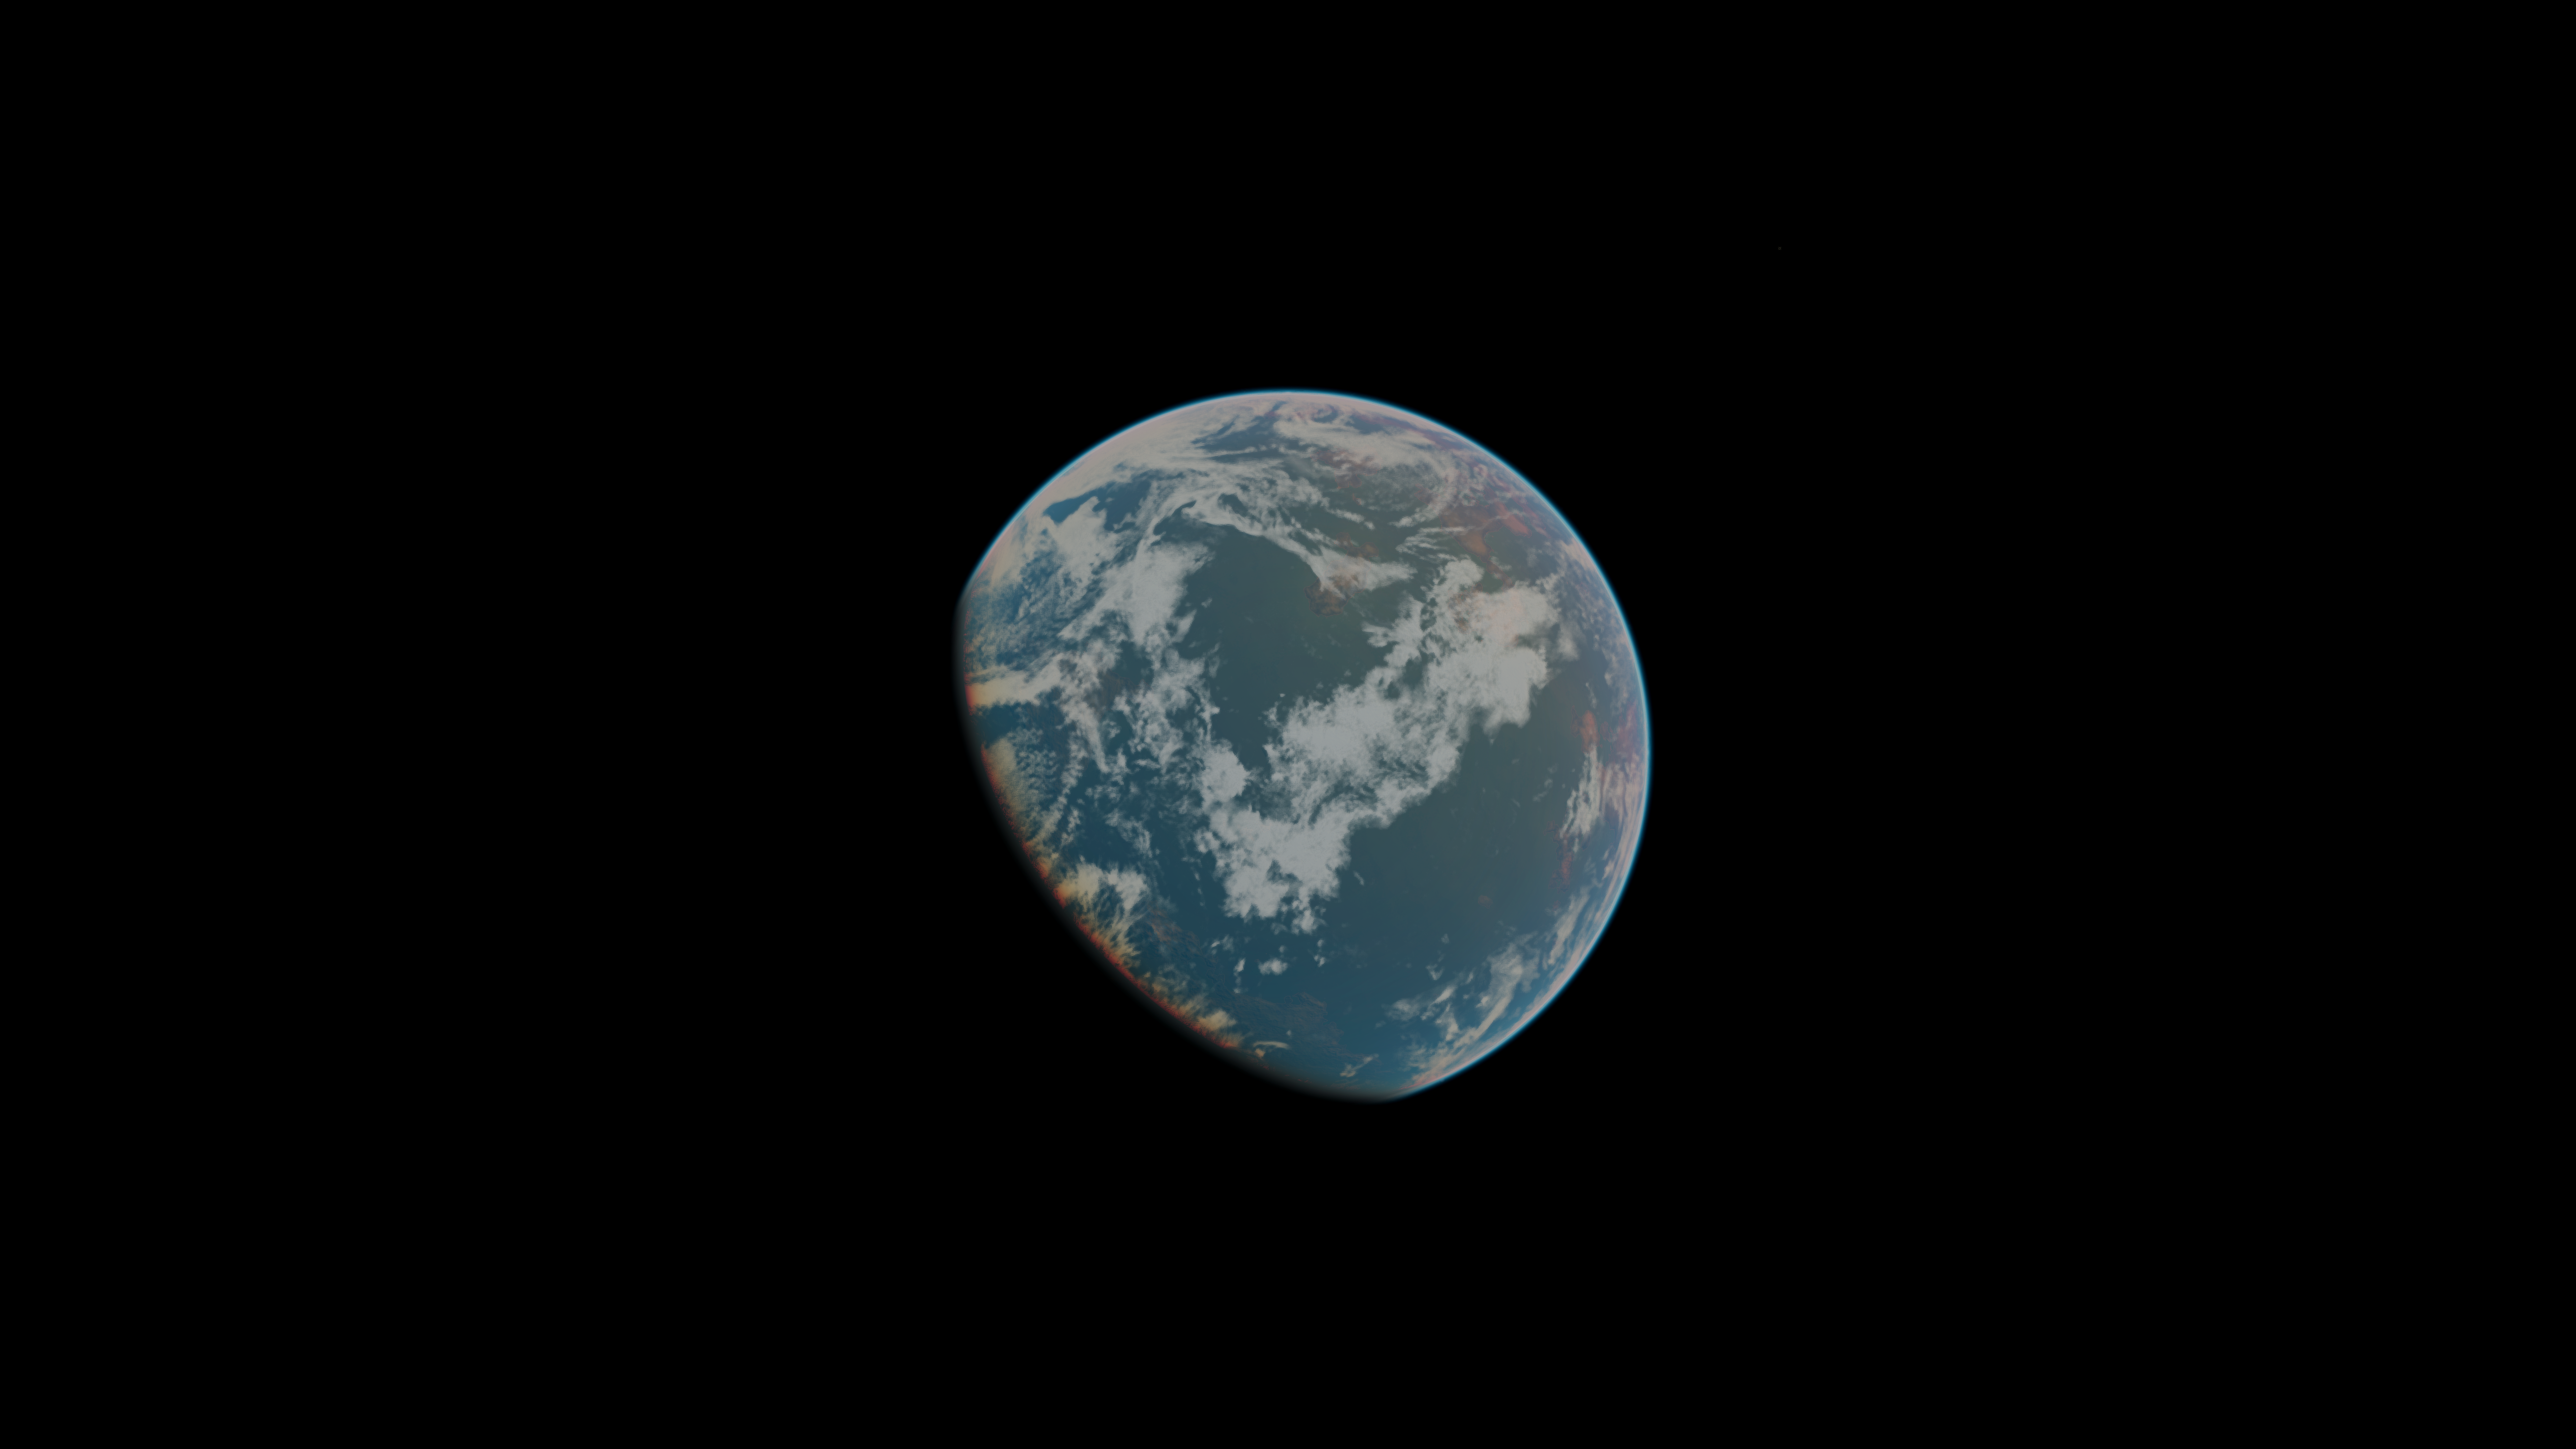 SS_12-09-2019_19-27-21.png